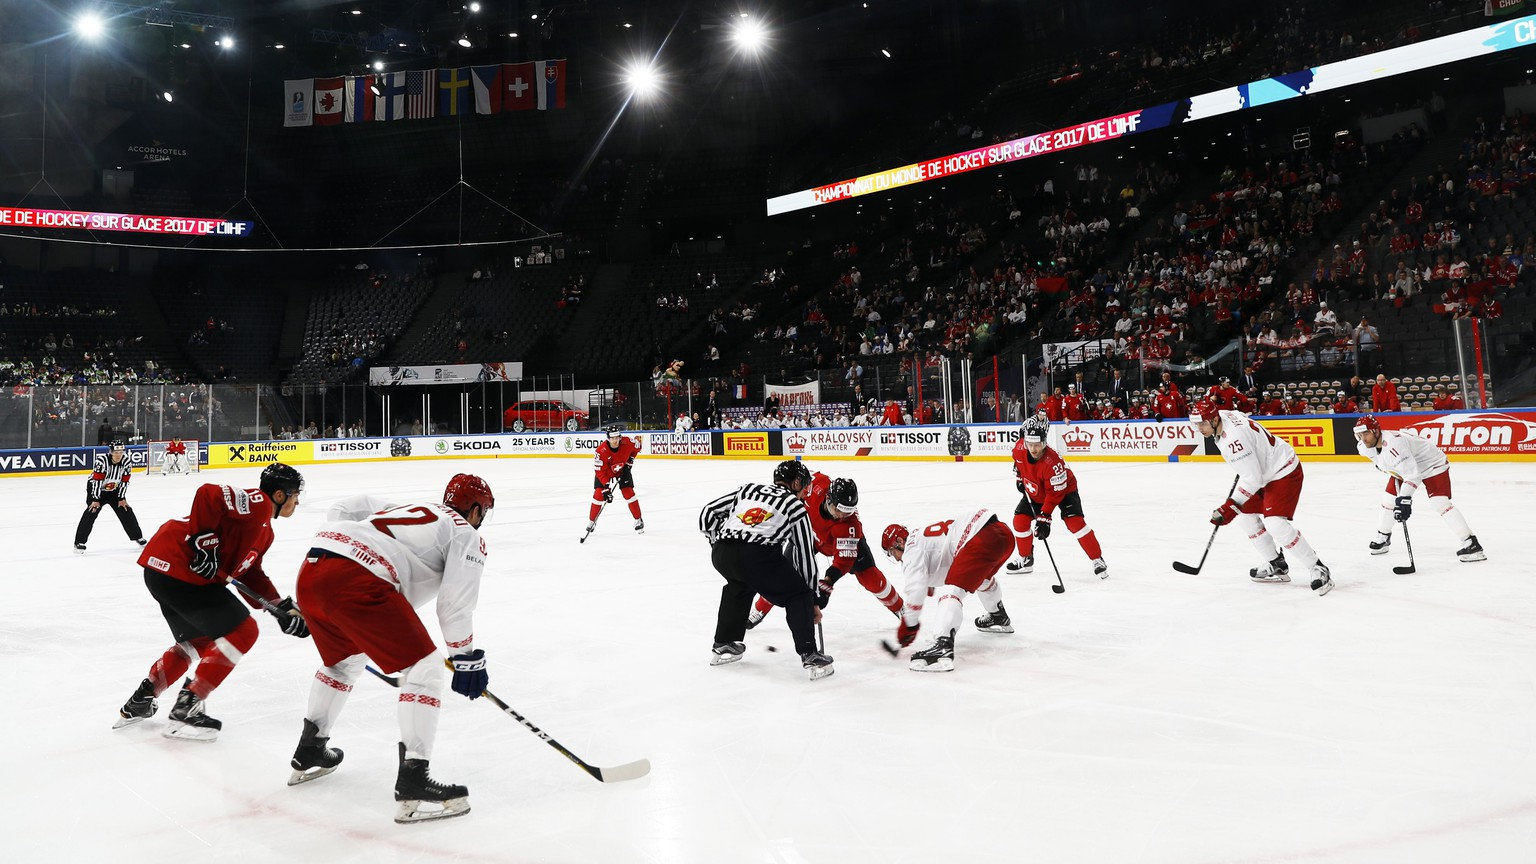 epa05955104 Players in a face-off during IIHF Ice Hockey World Championship 2017 group B preliminary round game between Switzerland and Belarus, in Paris, France, 10 May 2017.  EPA/ETIENNE LAURENT